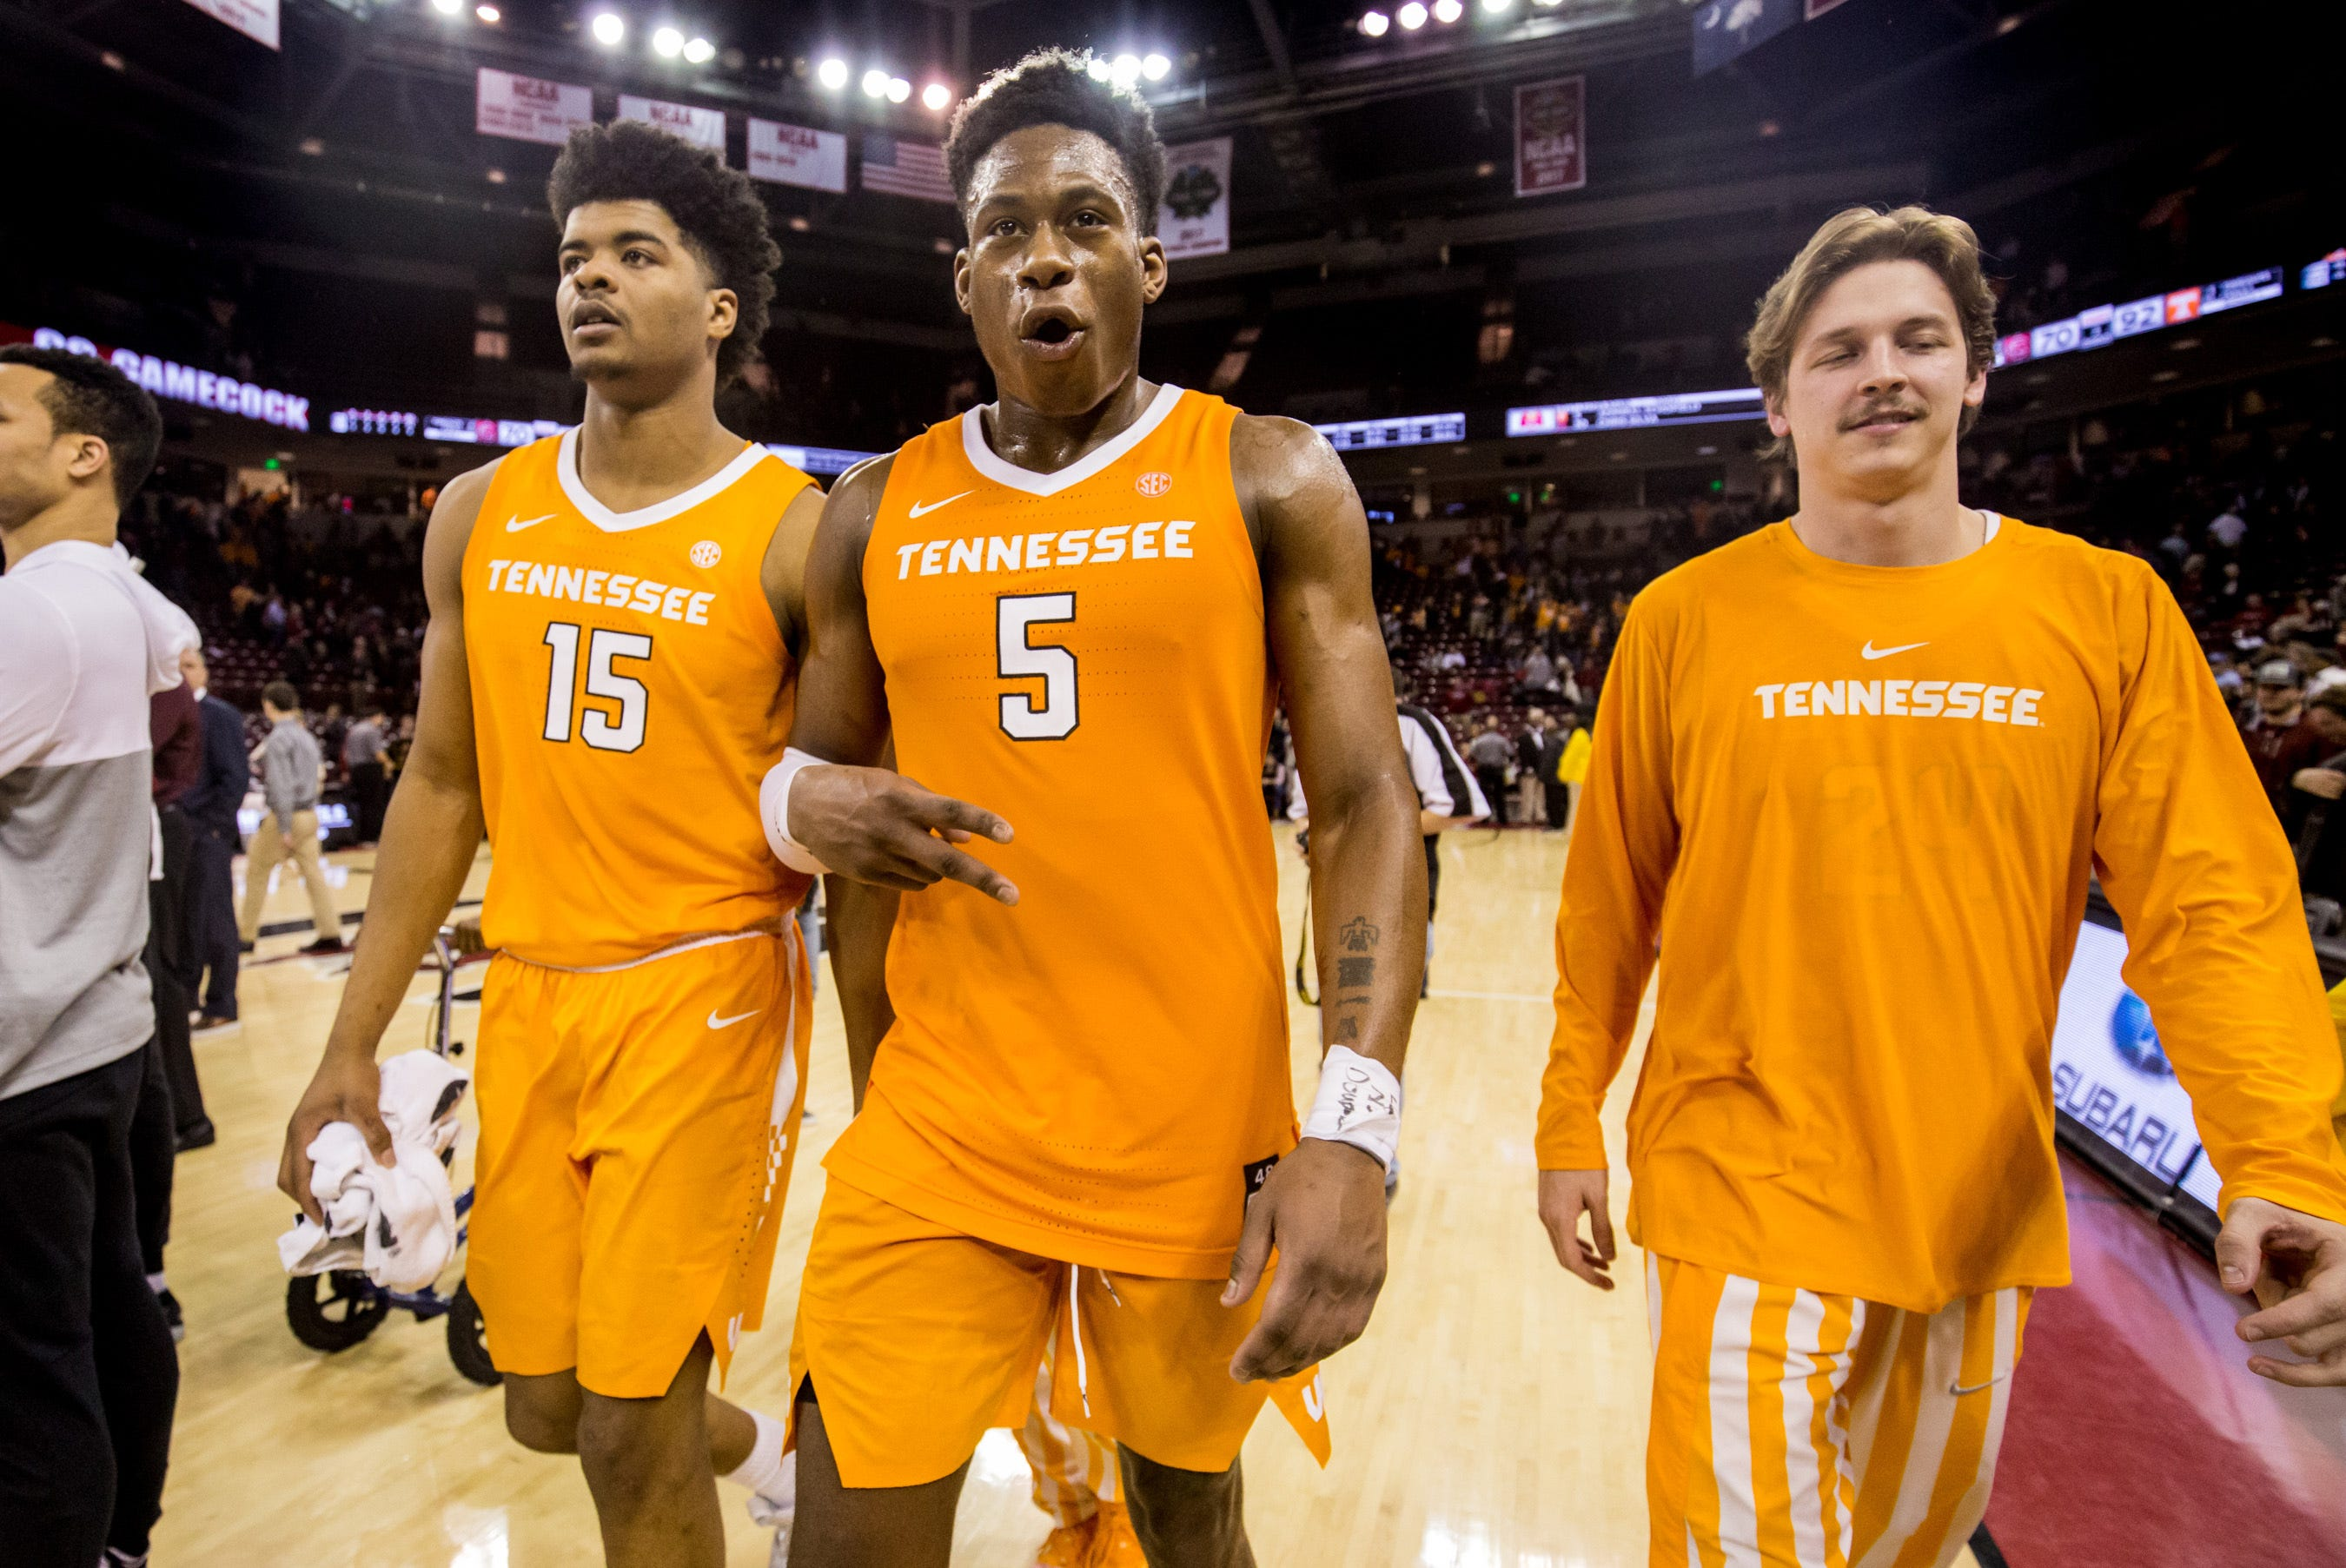 Tennessee stays at No. 1 for third consecutive week in USA TODAY Sports men's basketball poll